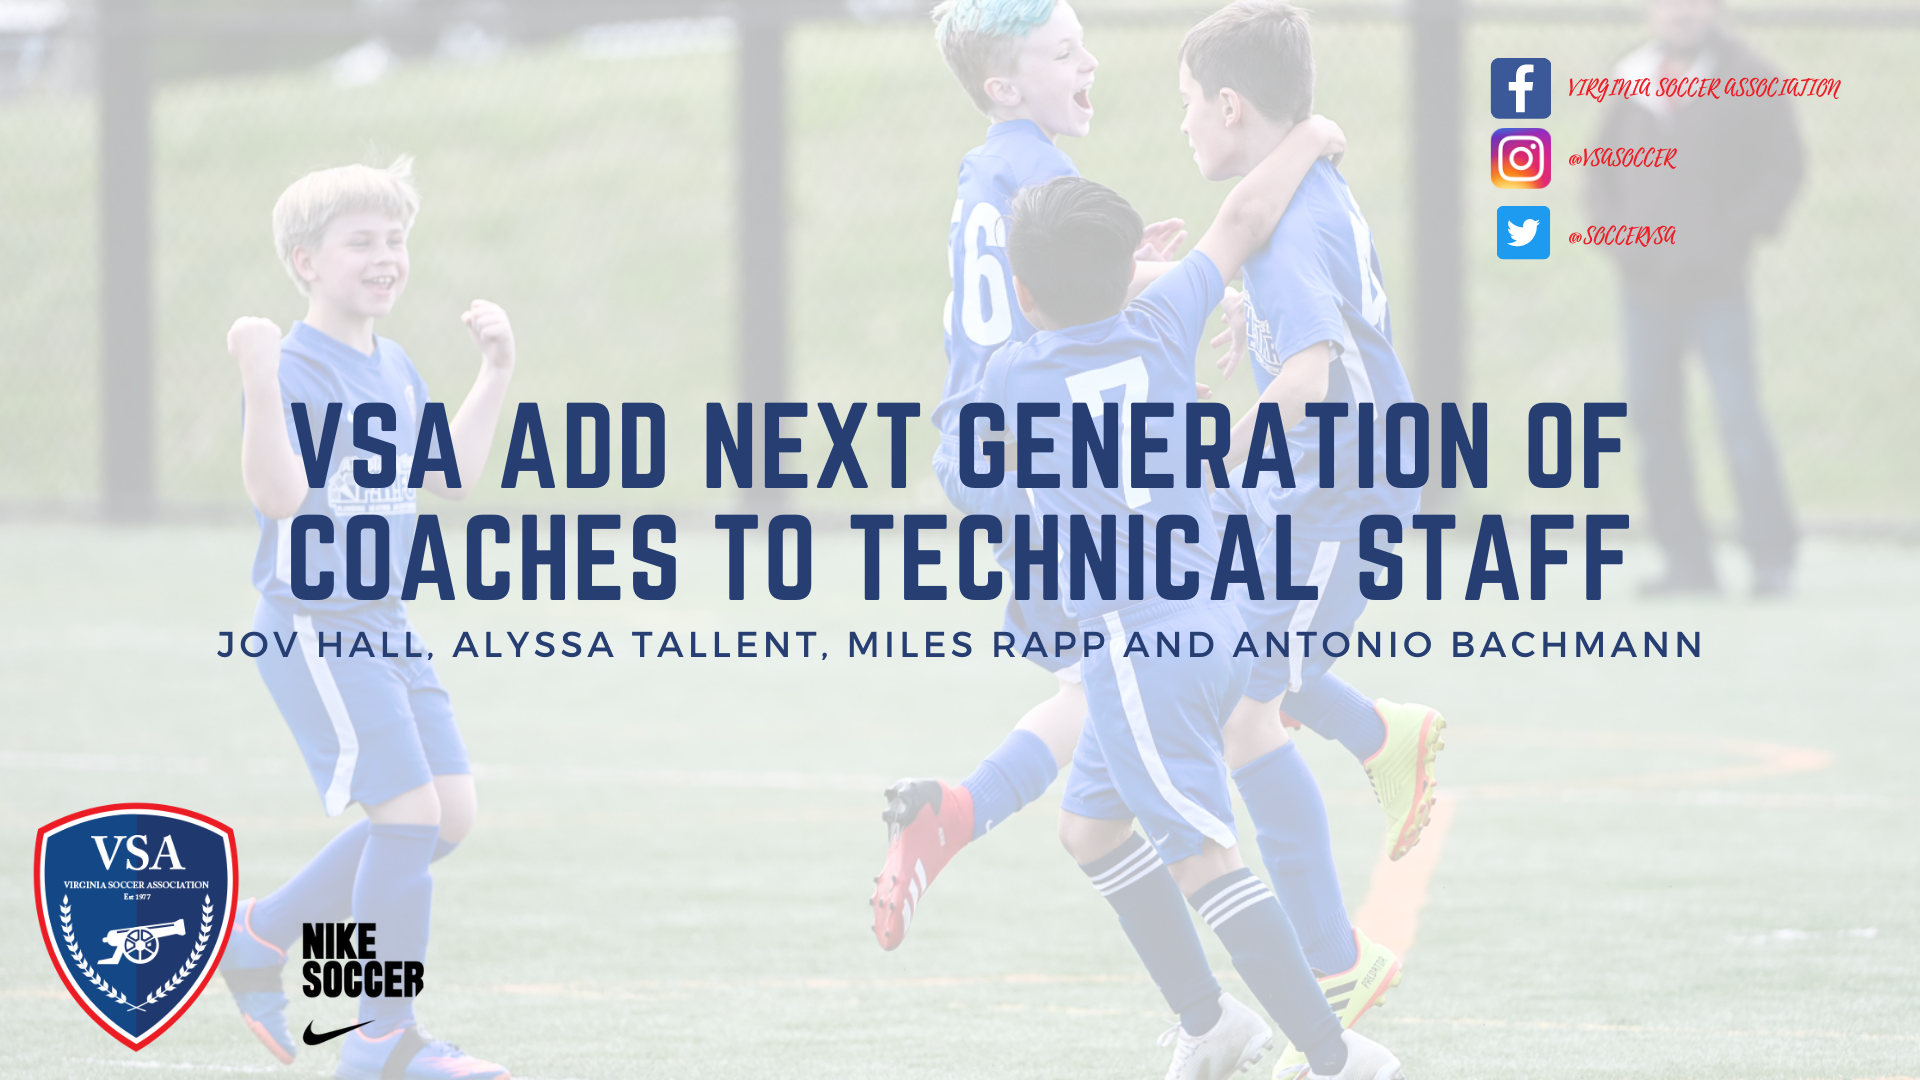 VSA Adds Next Generation of Coaches to Technical Staff